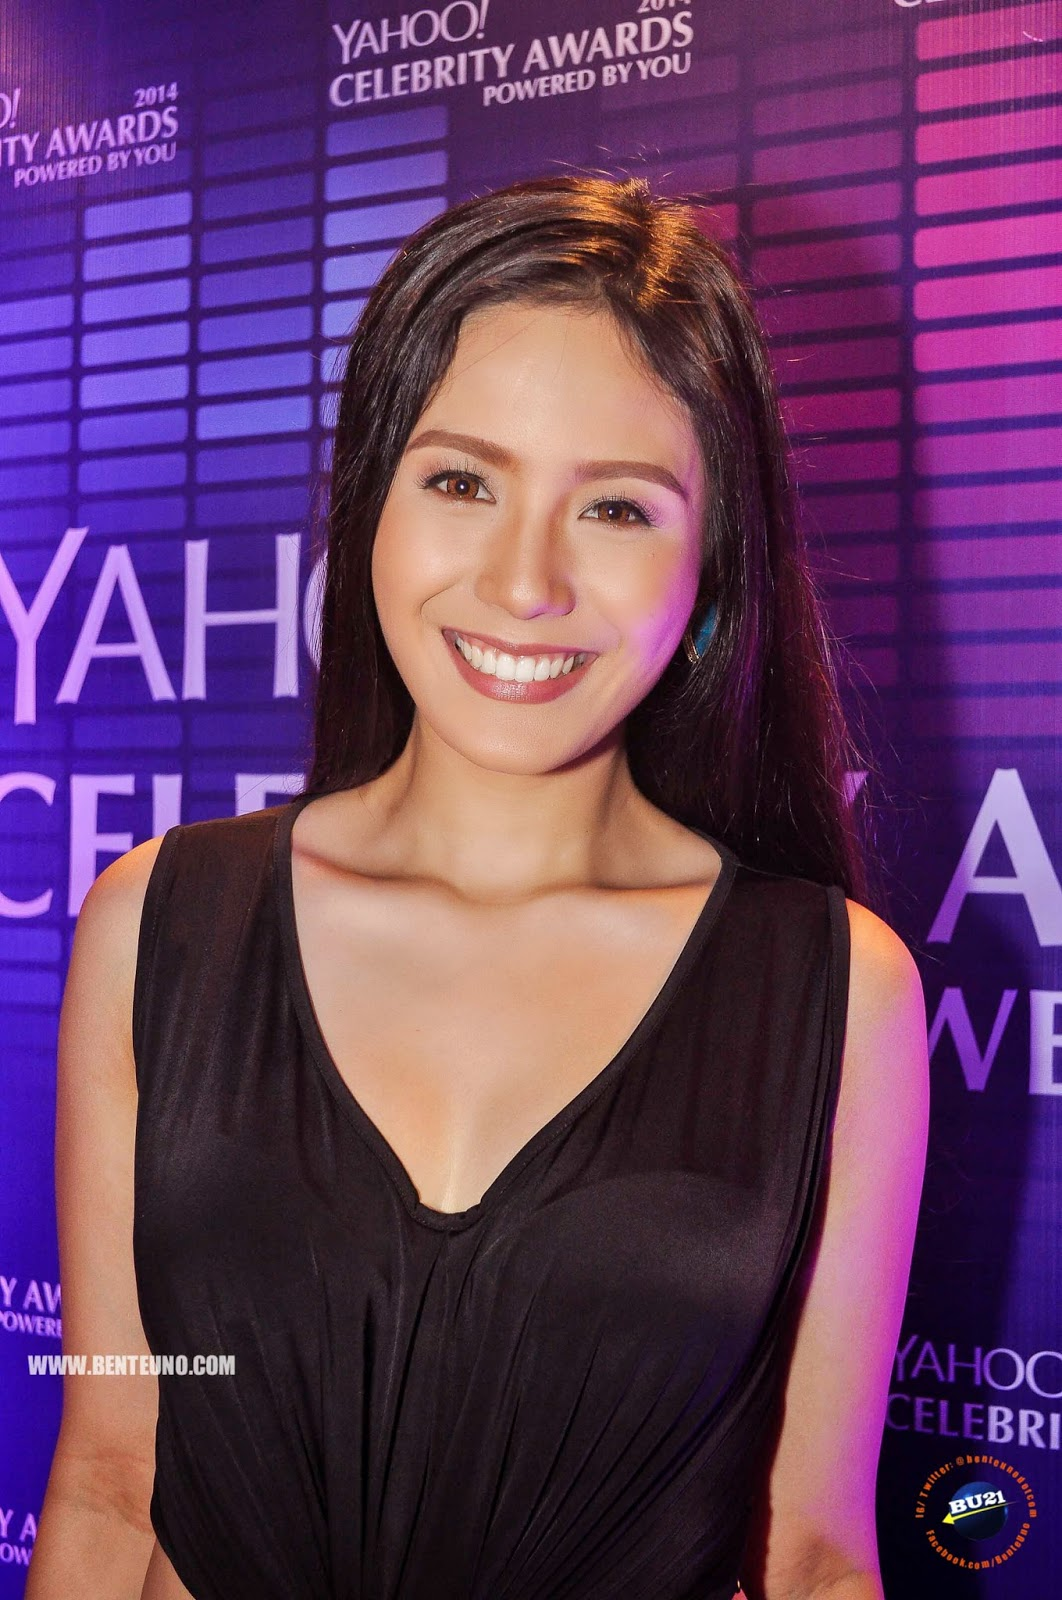 Ritz Azul at the media launch of Yahoo Celebrity Awards 2014